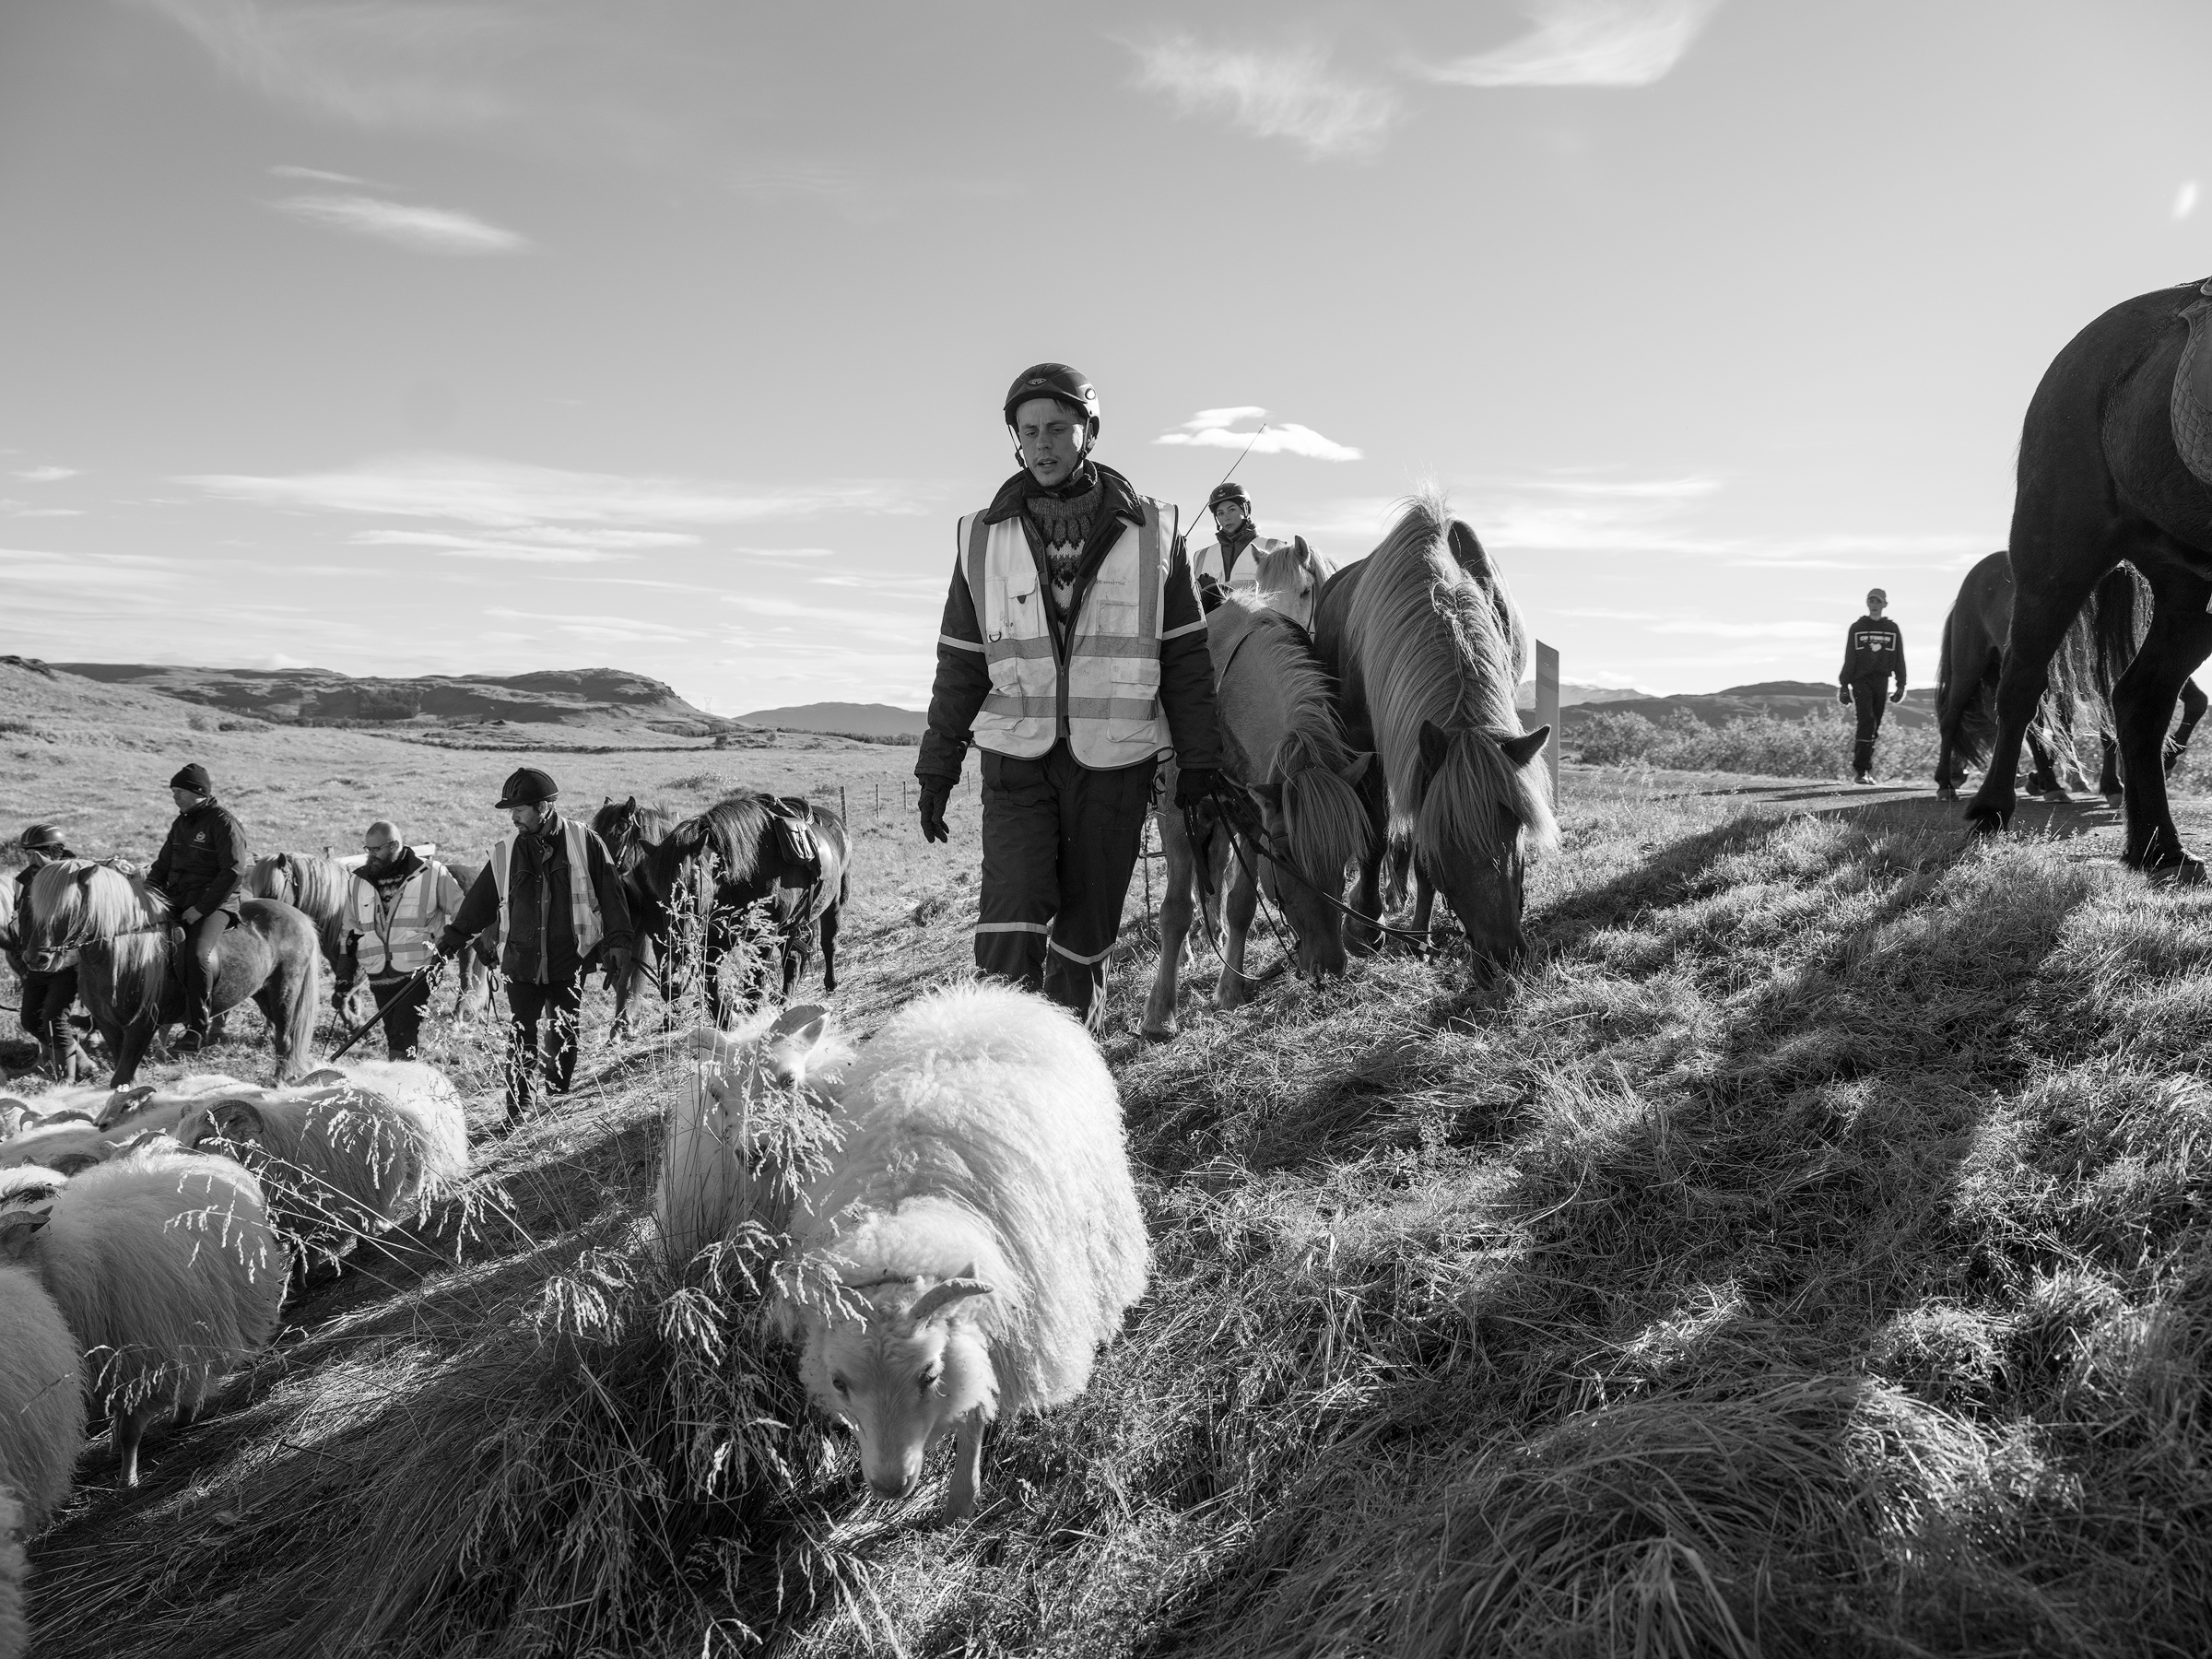 Riders on horseback and foot herd the last of the sheep into the pasture.